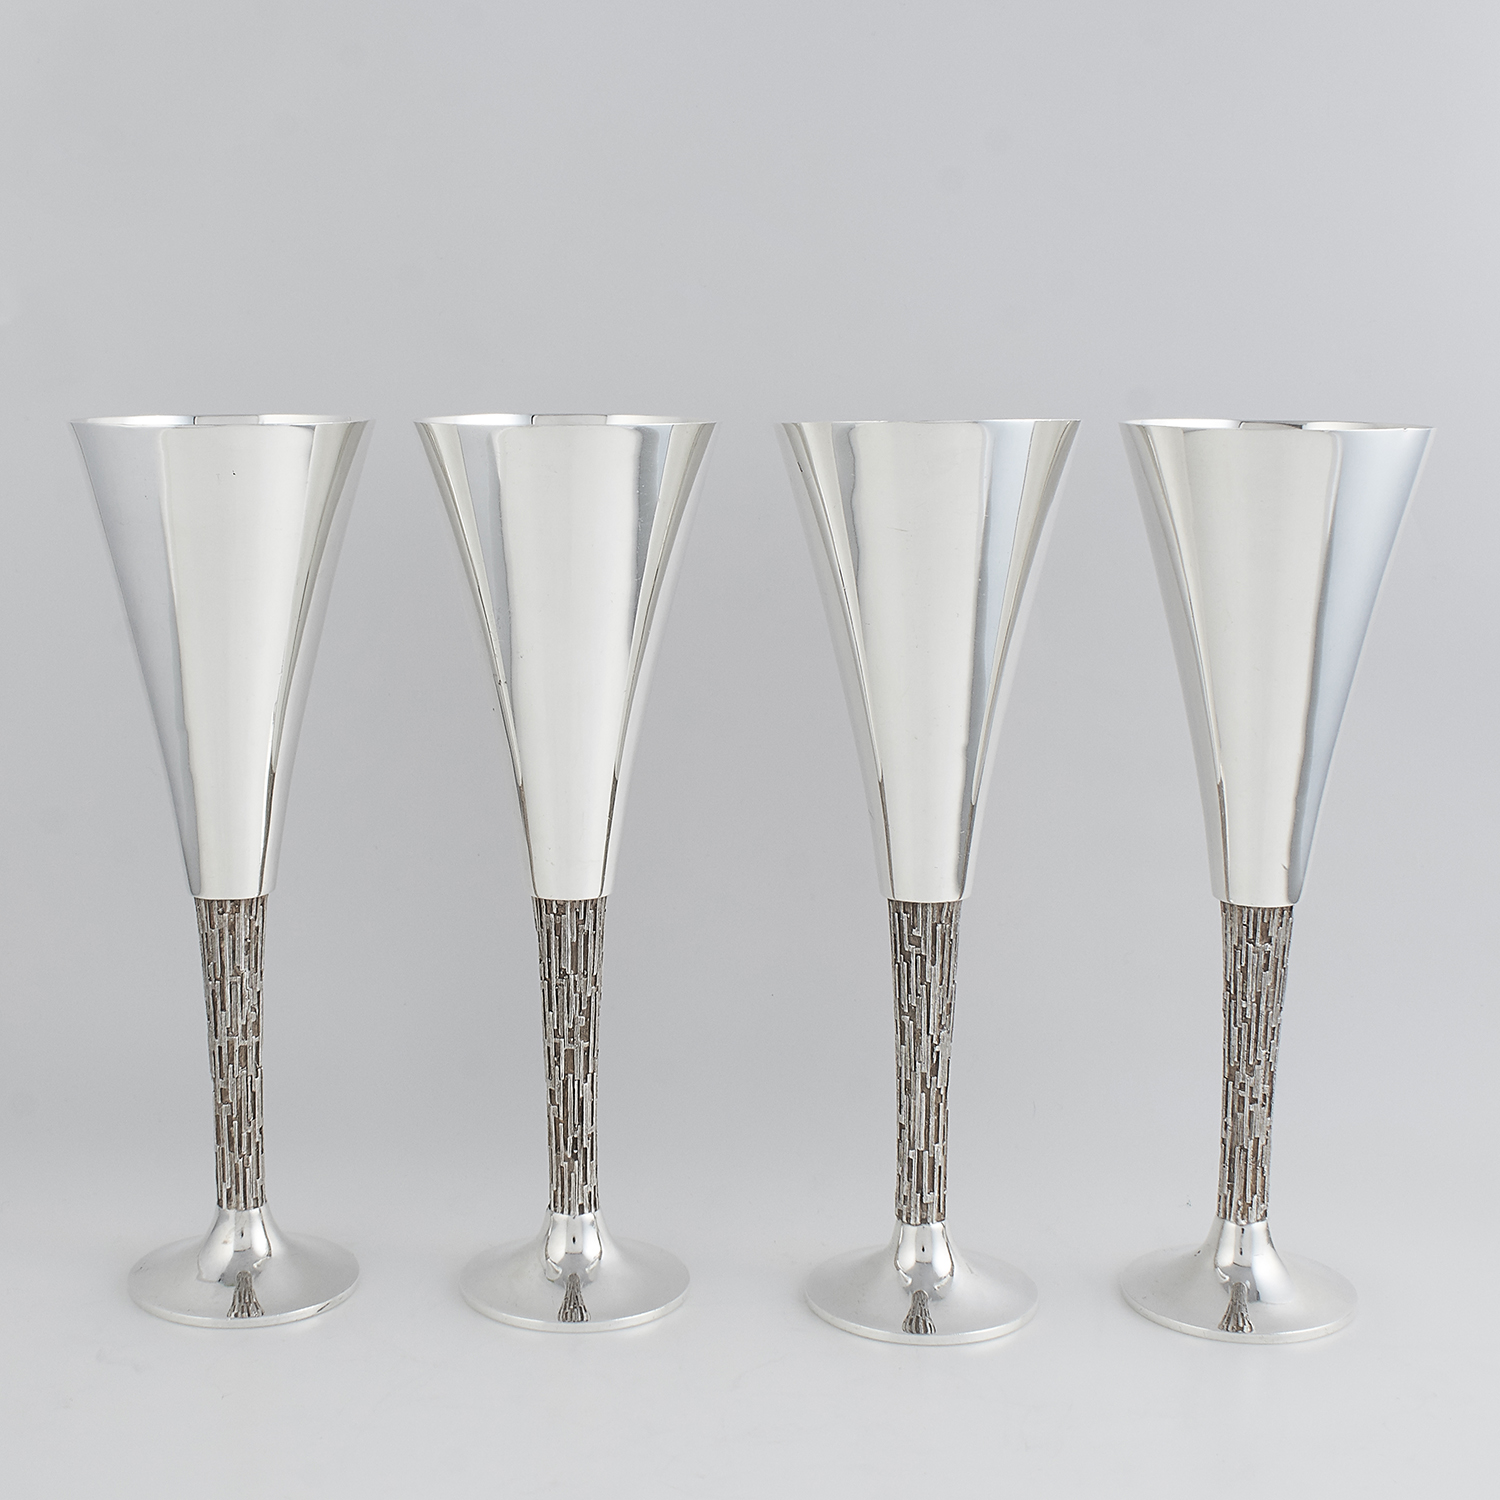 Los 74 - SET OF FOUR STERLING SILVER GOBLETS / CHAMPAGNE FLUTES, CHRISTOPHER LAWRENCE LONDON 1971 the